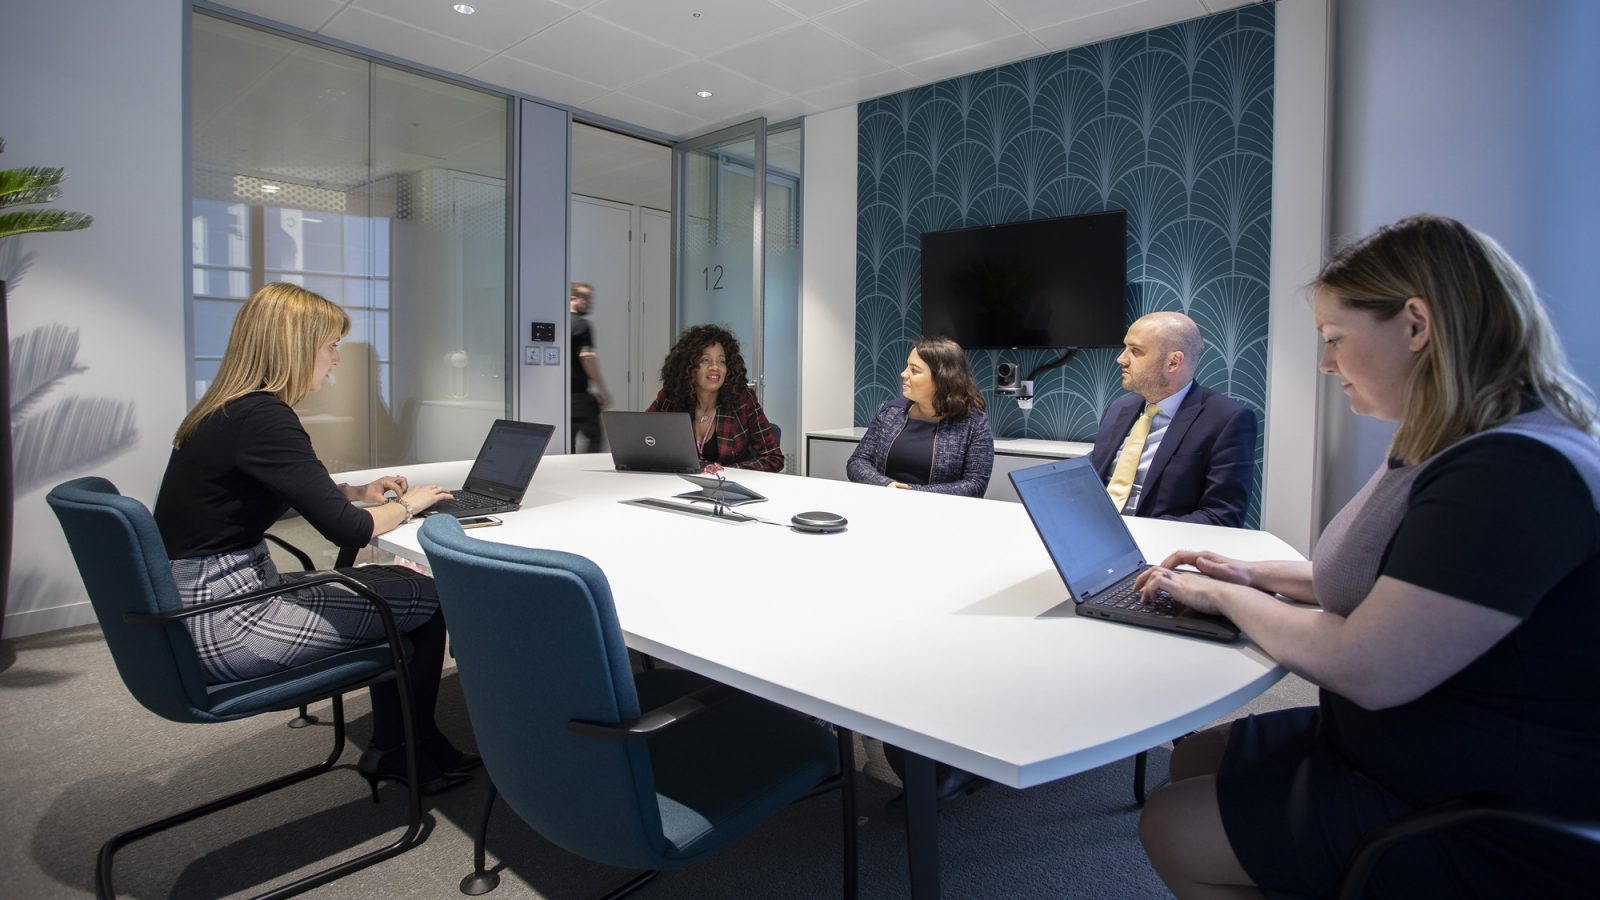 Setting the foundations of workplace digital transformation.